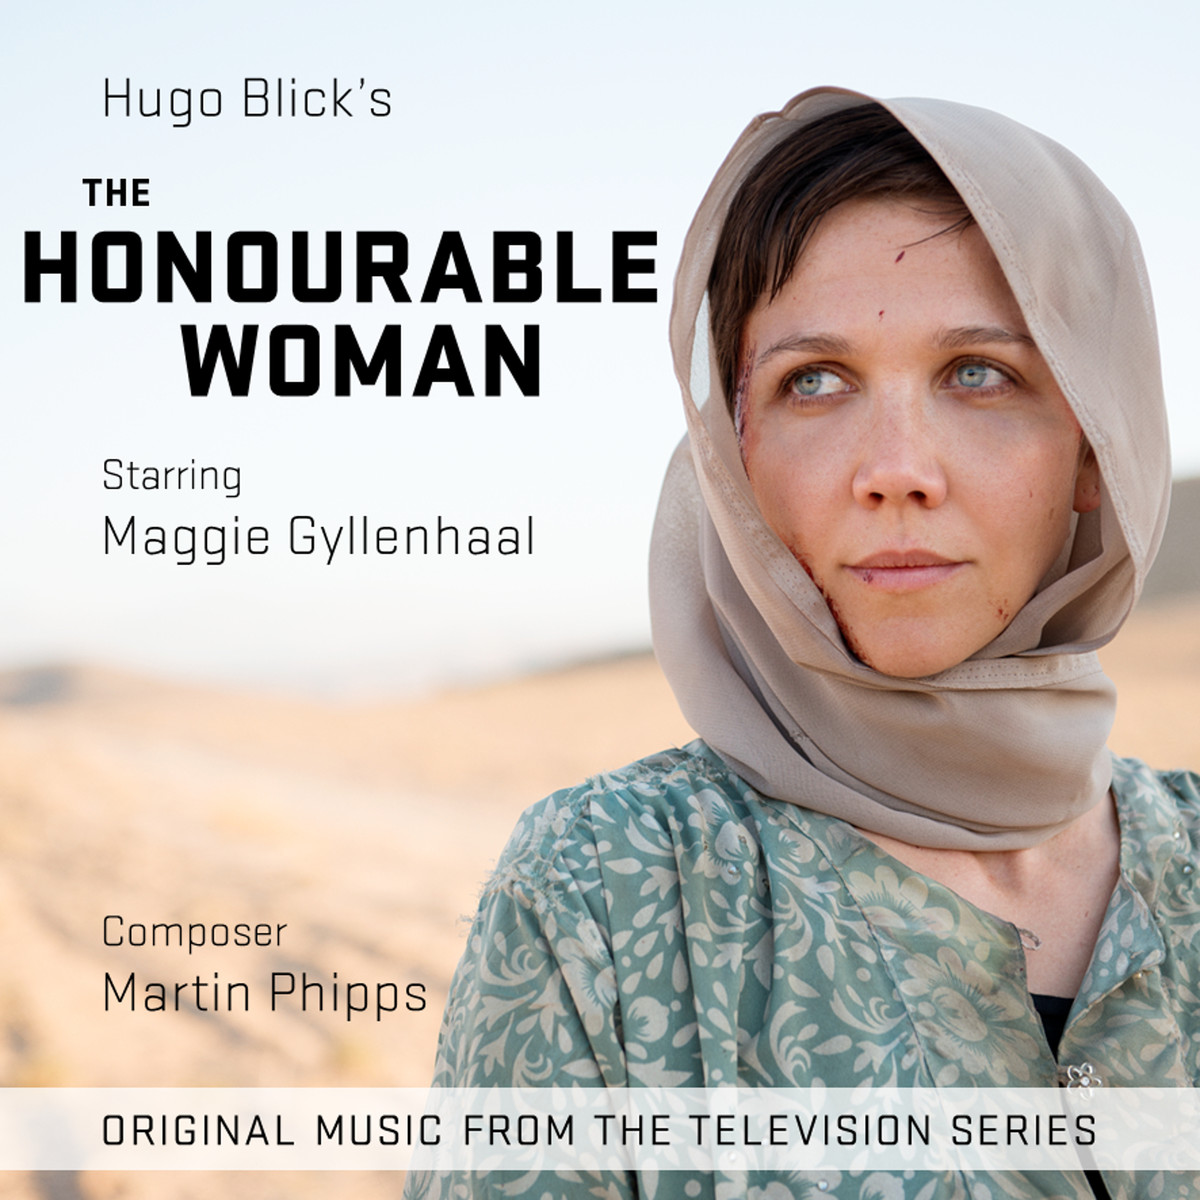 The Honourable Woman Music from the Original TV Series | 1200 x 1200 jpeg 268kB